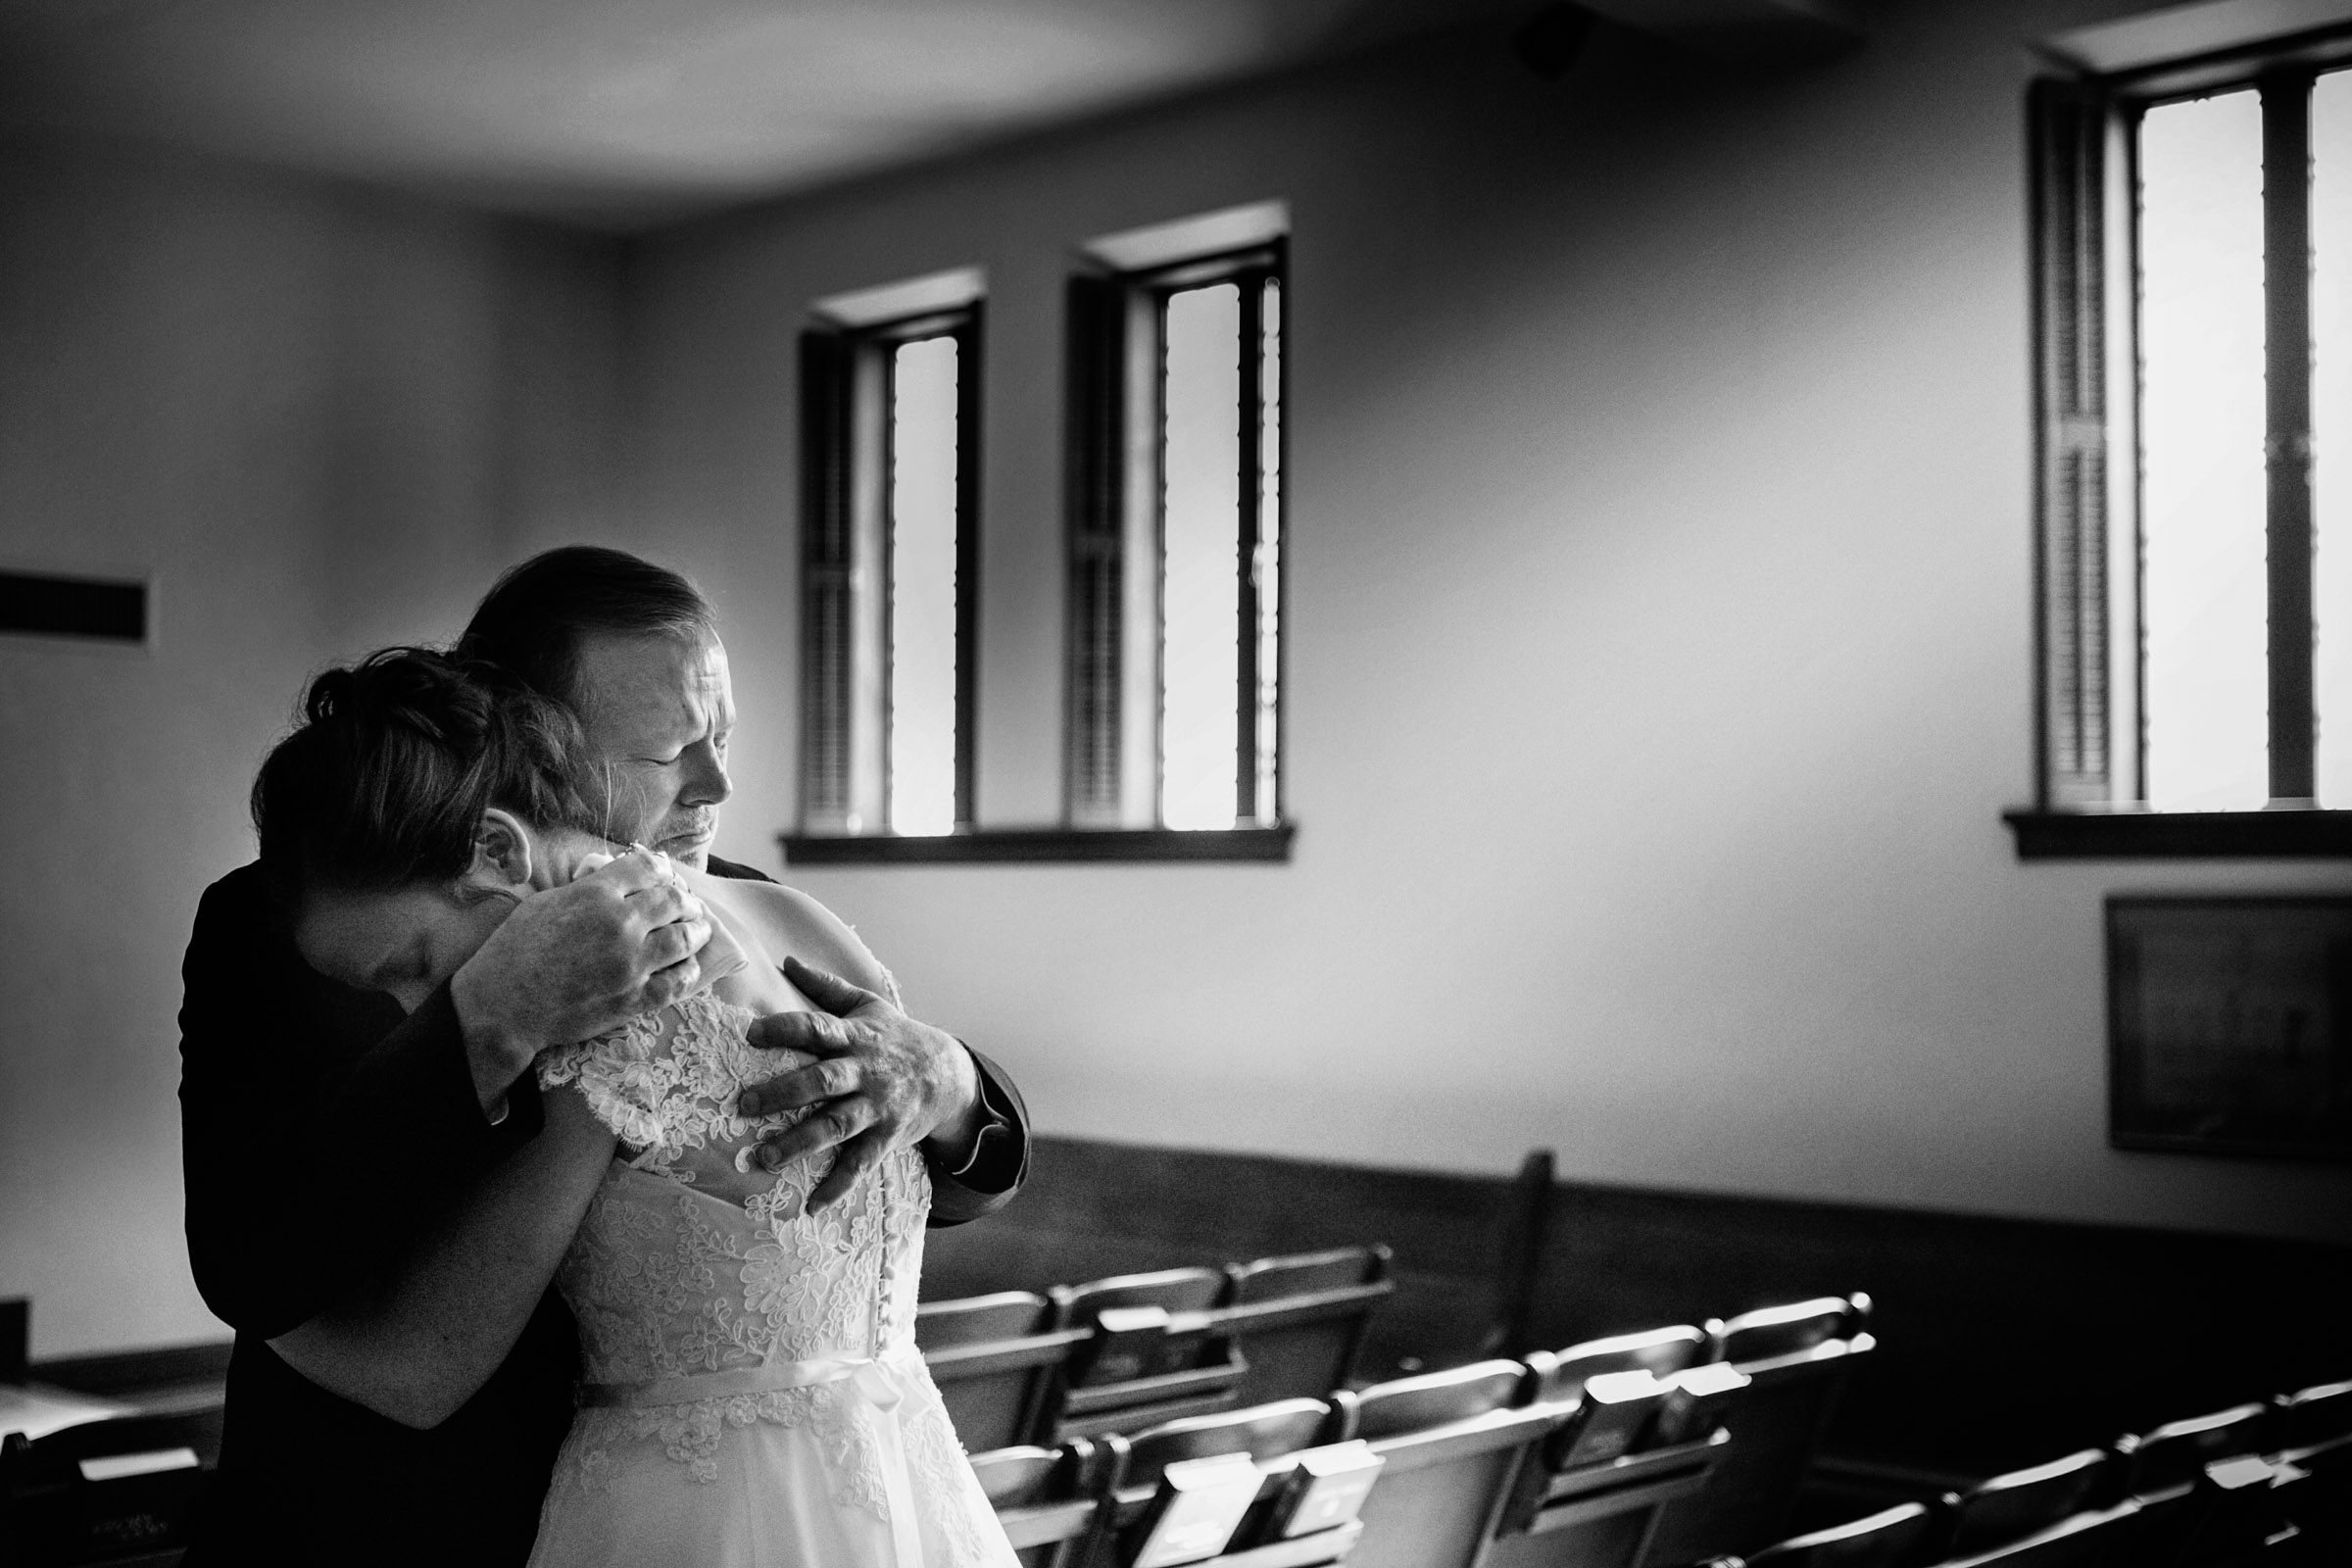 Father and bride embrace - photo by Marissa Joy Photography